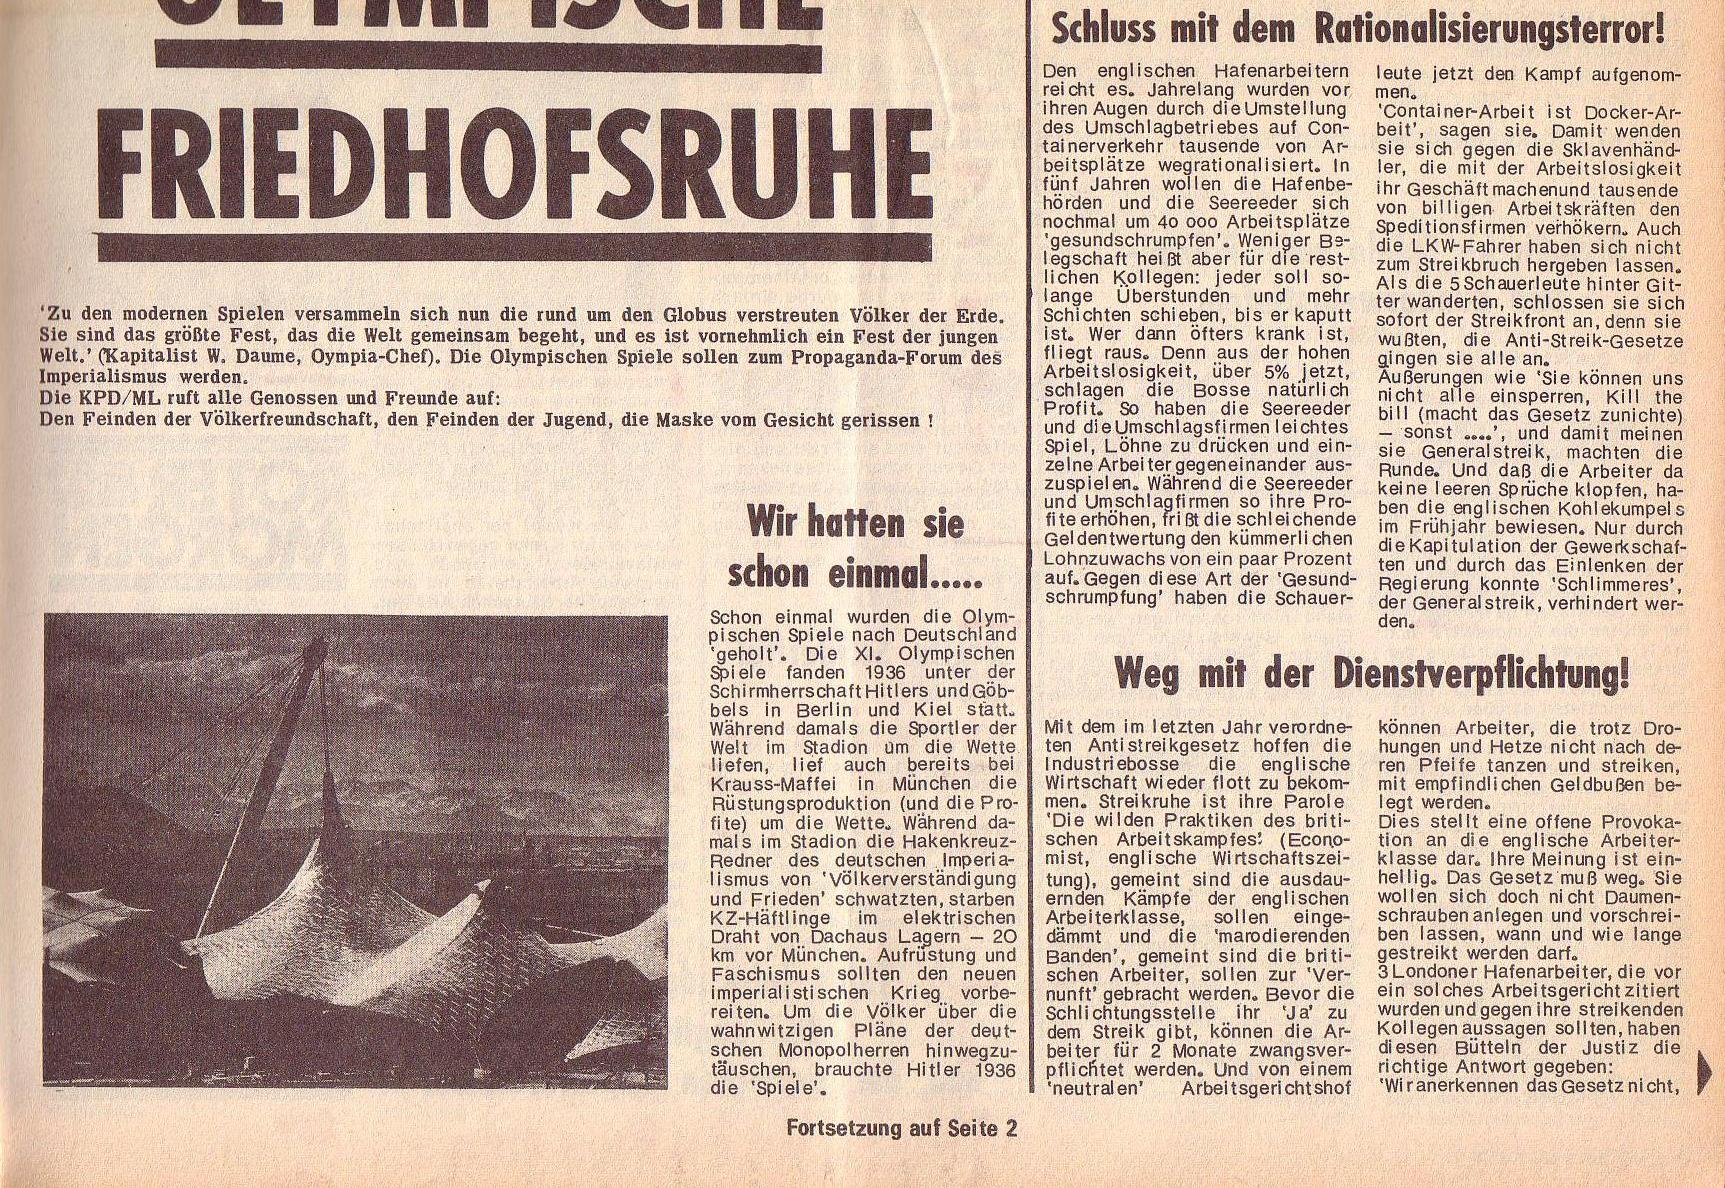 Roter Morgen, 6. Jg., 14. August 1972, Nr. 16, Seite 1b